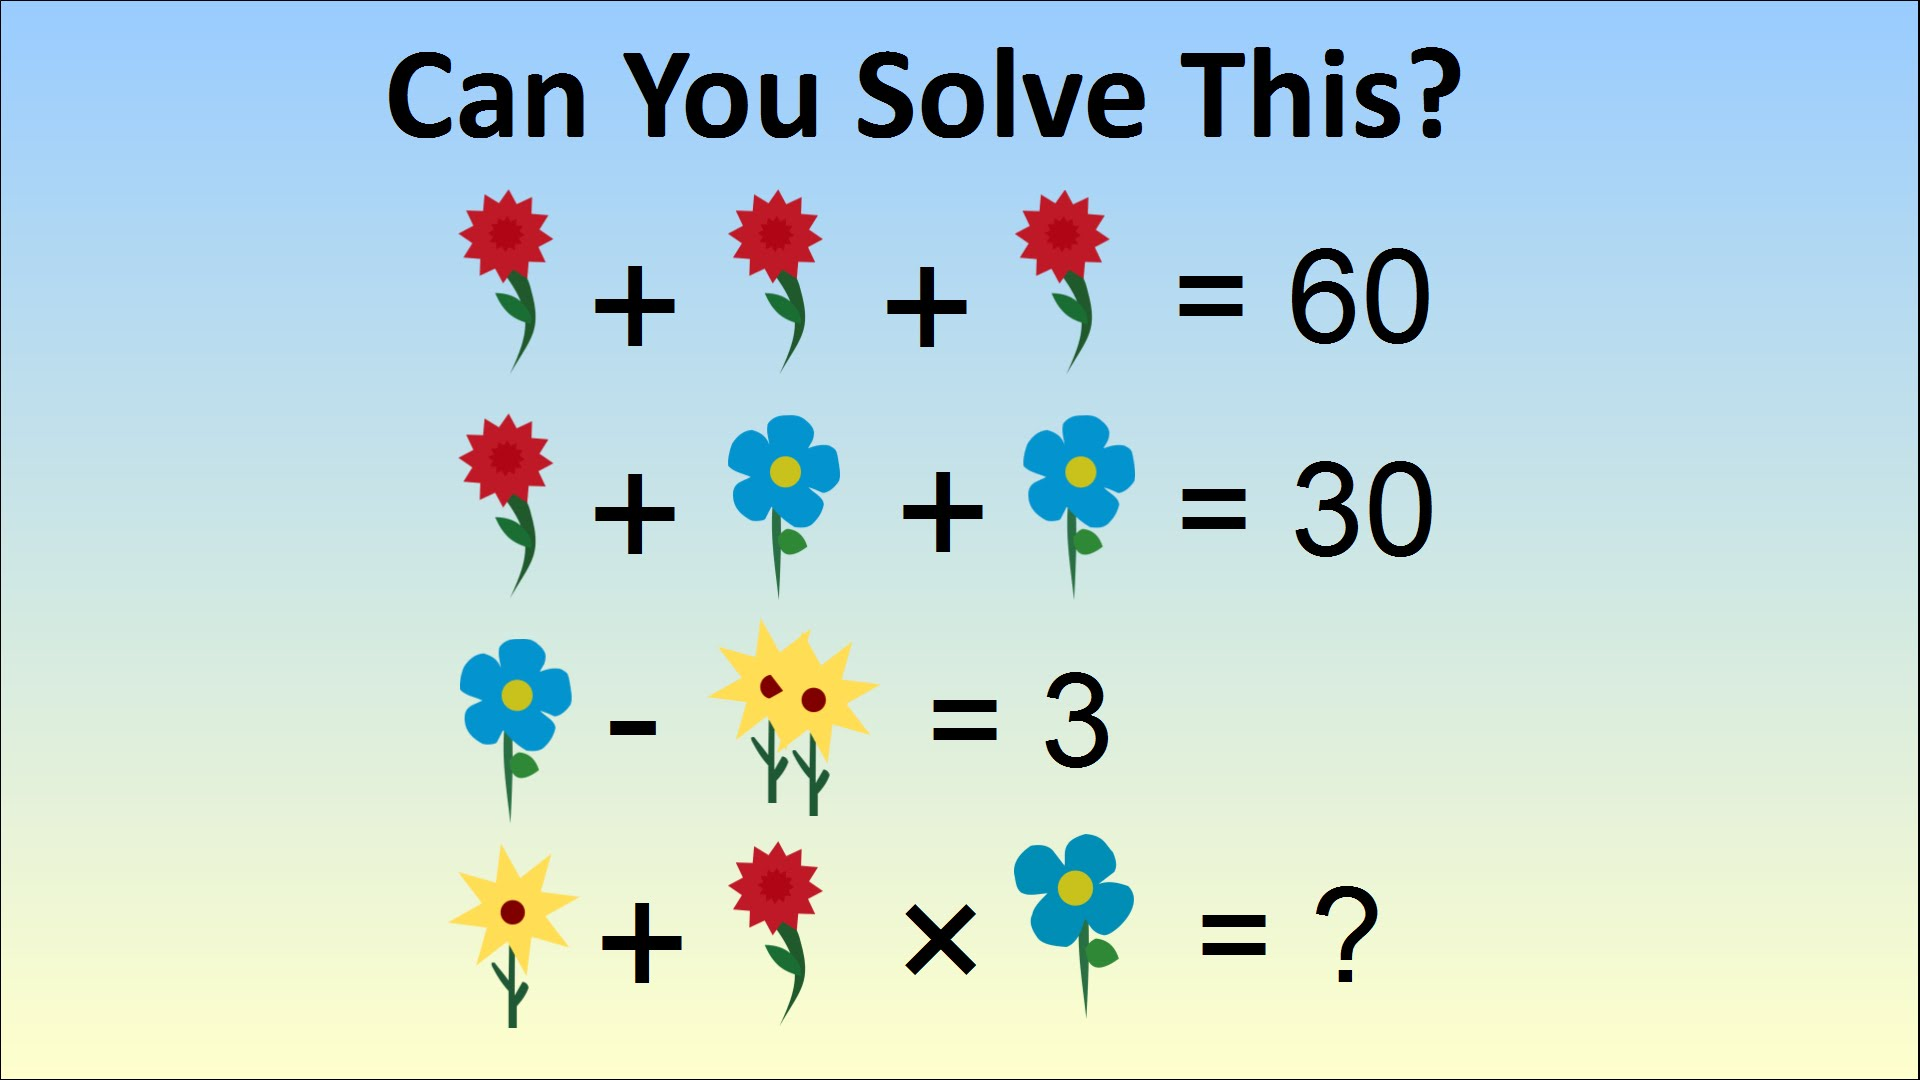 Can You Solve This Flower Math Problem